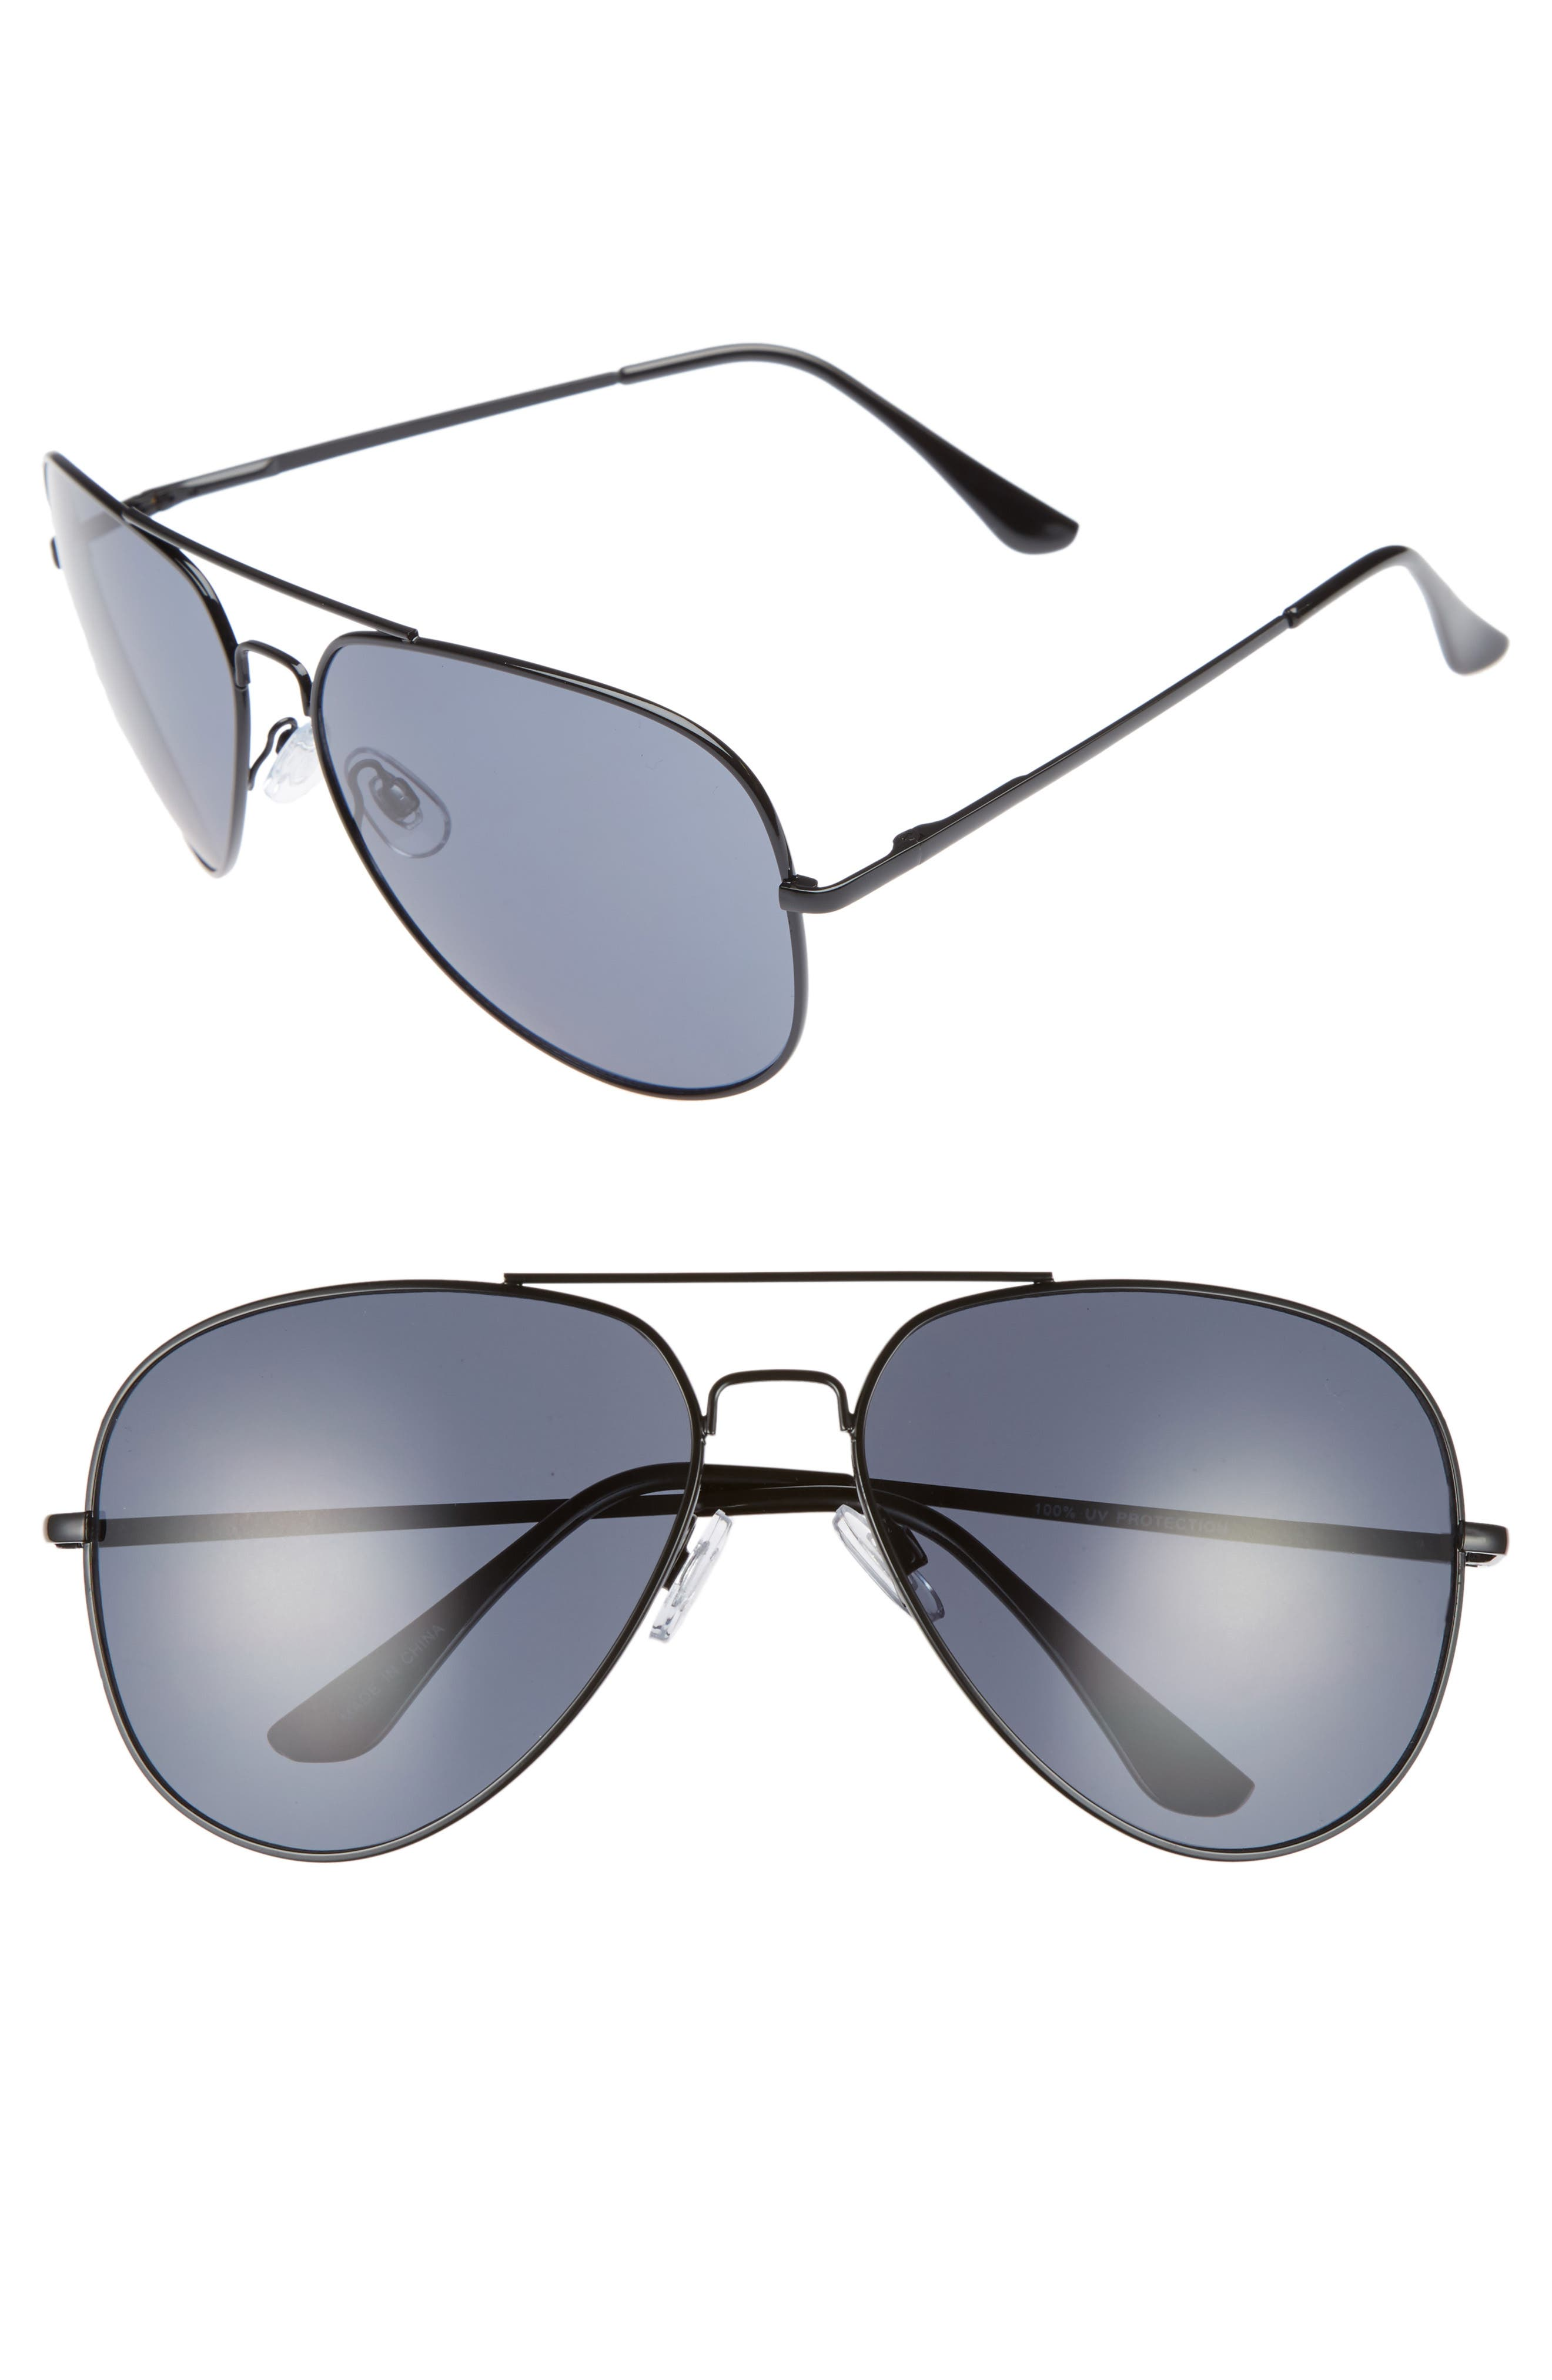 60mm Large Aviator Sunglasses,                         Main,                         color, 001